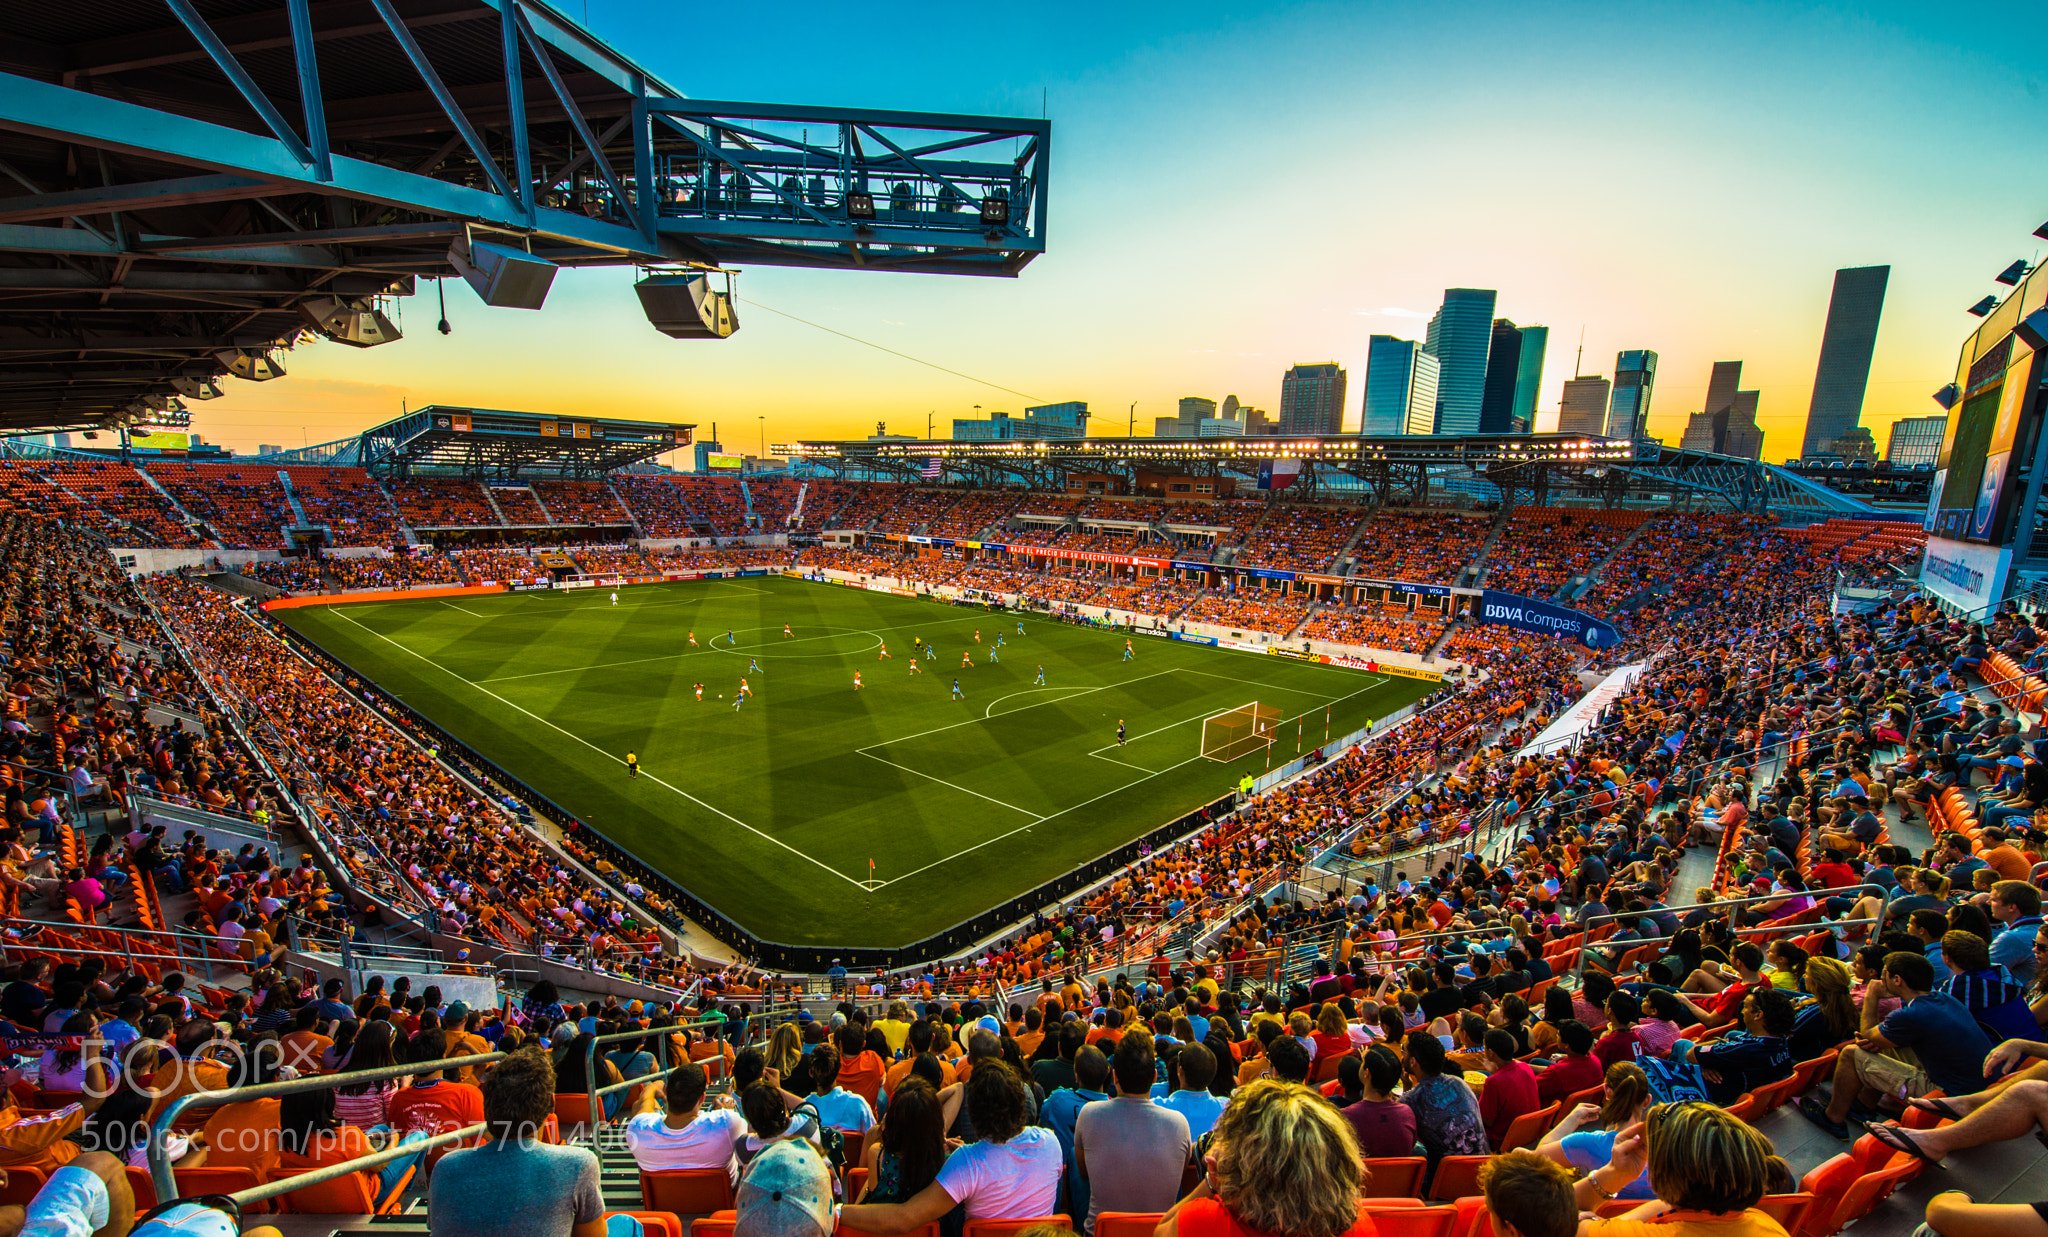 Photograph Sunset over BBVA Compass Stadium by hdngo24 on 500px